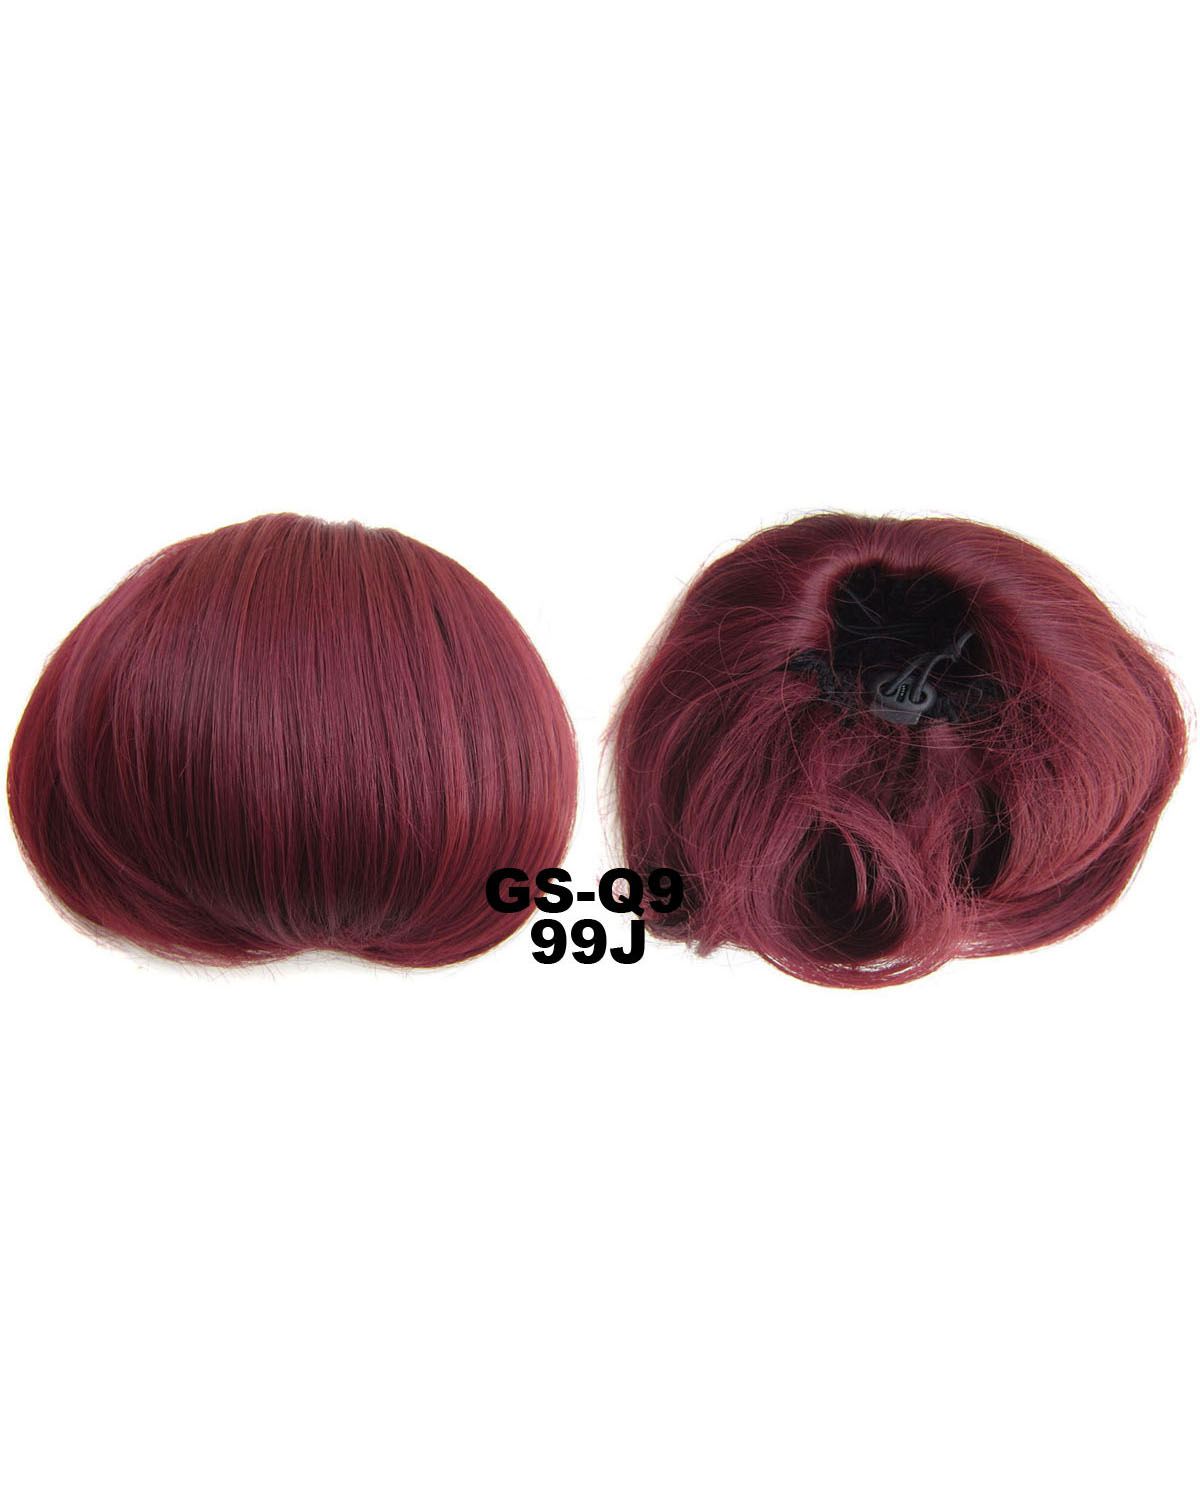 Ladies Elaborate and Hot-sale Curly and Short Hair Buns Drawstring Synthetic Hair Extension Bride Scrunchies  99J